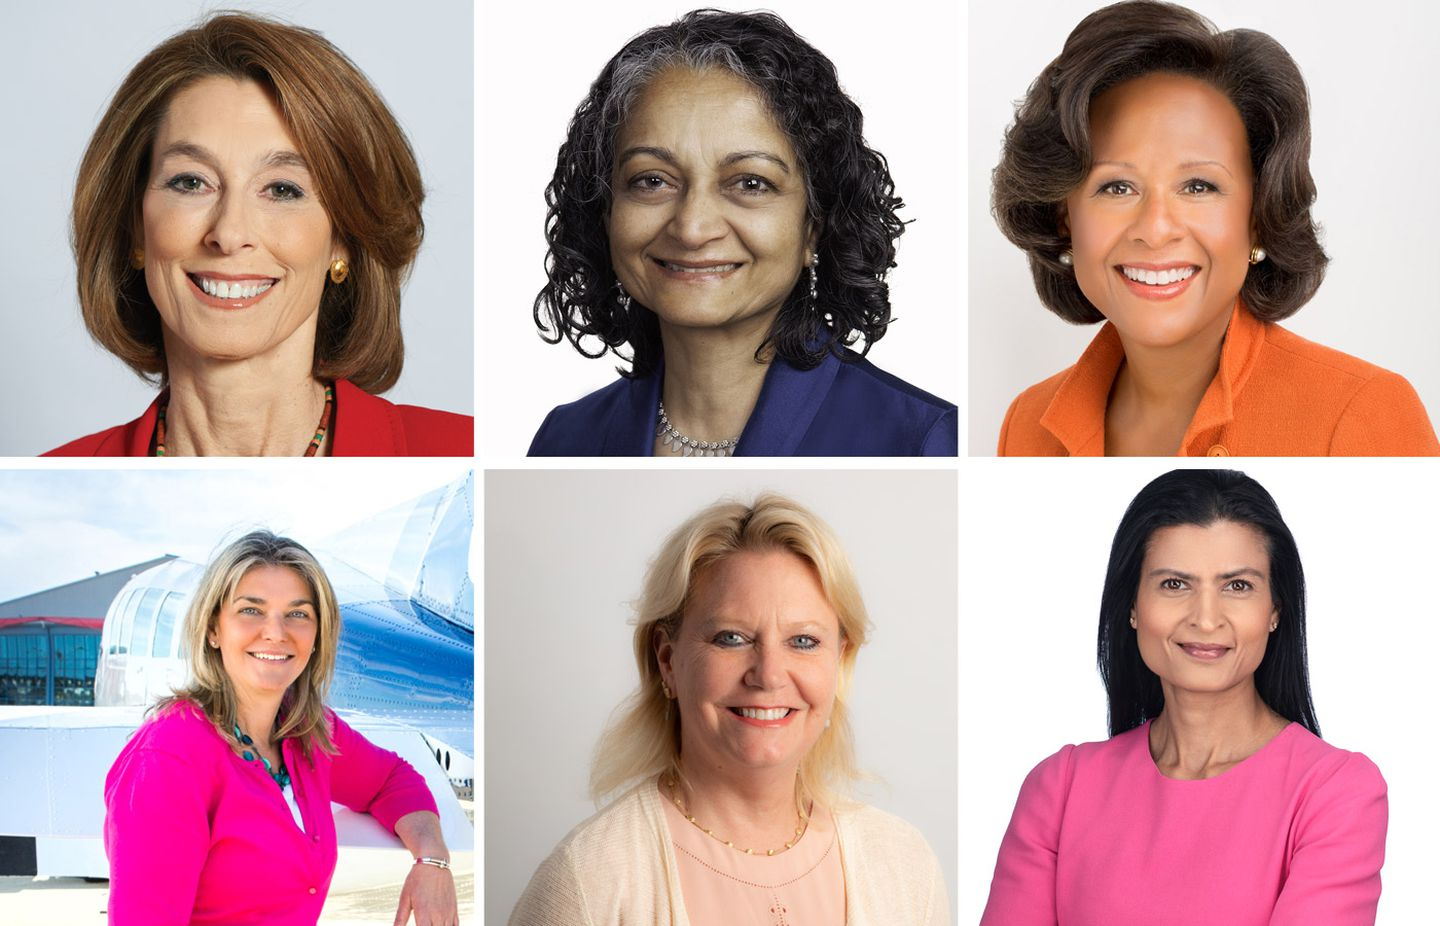 Top row, from left: Dr. Laurie H. Glimcher, of Dana-Farber Cancer Institute; Geeta Aiyer, of Boston Common Asset Management; and Dr. Paula A. Johnson, of Wellesley College. Bottom row, from left: Linda Markham, of Cape Air; Jackie Fouse, of Agios Pharmaceuticals, and Sam King, of Veracode.